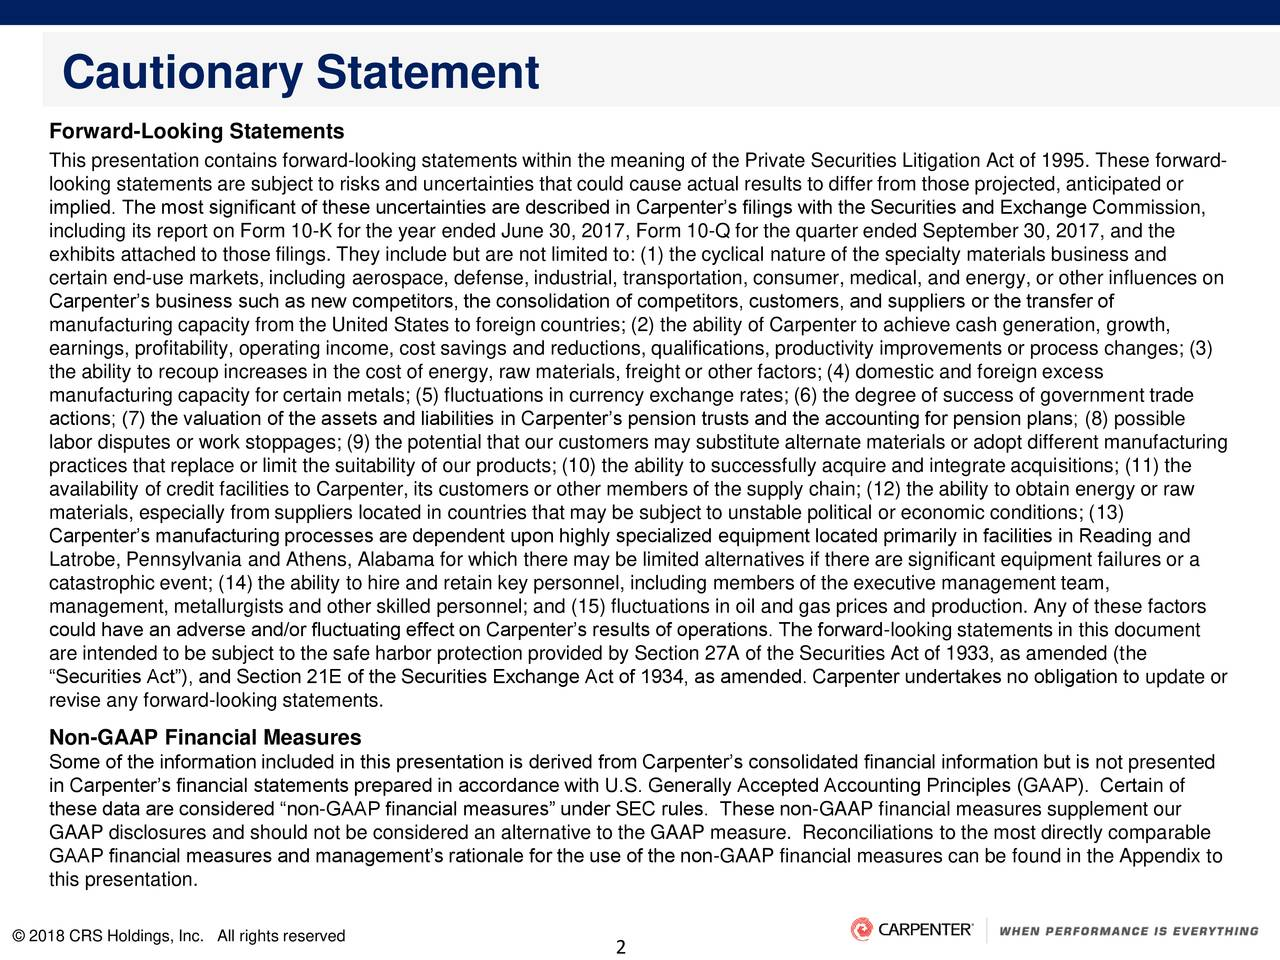 Forward-Looking Statements This presentation contains forward-looking statements within the meaning of the Private Securities Litigation Act of 1995. These forward- looking statements are subject to risks and uncertainties that could cause actual results to differ from those projected, anticipated or implied. The most significant of these uncertainties are described in Carpenter's filings with the Securities and Exchange Commission, including its report on Form 10-K for the year ended June 30, 2017, Form 10-Q for the quarter ended September 30, 2017, and the exhibits attached to those filings. They include but are not limited to: (1) the cyclical nature of the specialty materials business and certain end-use markets, including aerospace, defense, industrial, transportation, consumer, medical, and energy, or other influences on Carpenter's business such as new competitors, the consolidation of competitors, customers, and suppliers or the transfer of manufacturing capacity from the United States to foreign countries; (2) the ability of Carpenter to achieve cash generation, growth, earnings, profitability, operating income, cost savings and reductions, qualifications, productivity improvements or process changes; (3) the ability to recoup increases in the cost of energy, raw materials, freight or other factors; (4) domestic and foreign excess manufacturing capacity for certain metals; (5) fluctuations in currency exchange rates; (6) the degree of success of government trade actions; (7) the valuation of the assets and liabilities in Carpenter's pension trusts and the accounting for pension plans; (8) possible labor disputes or work stoppages; (9) the potential that our customers may substitute alternate materials or adopt different manufacturing practices that replace or limit the suitability of our products; (10) the ability to successfully acquire and integrate acquisitions; (11) the availability of credit facilities to Carpenter, its customers or other members of th